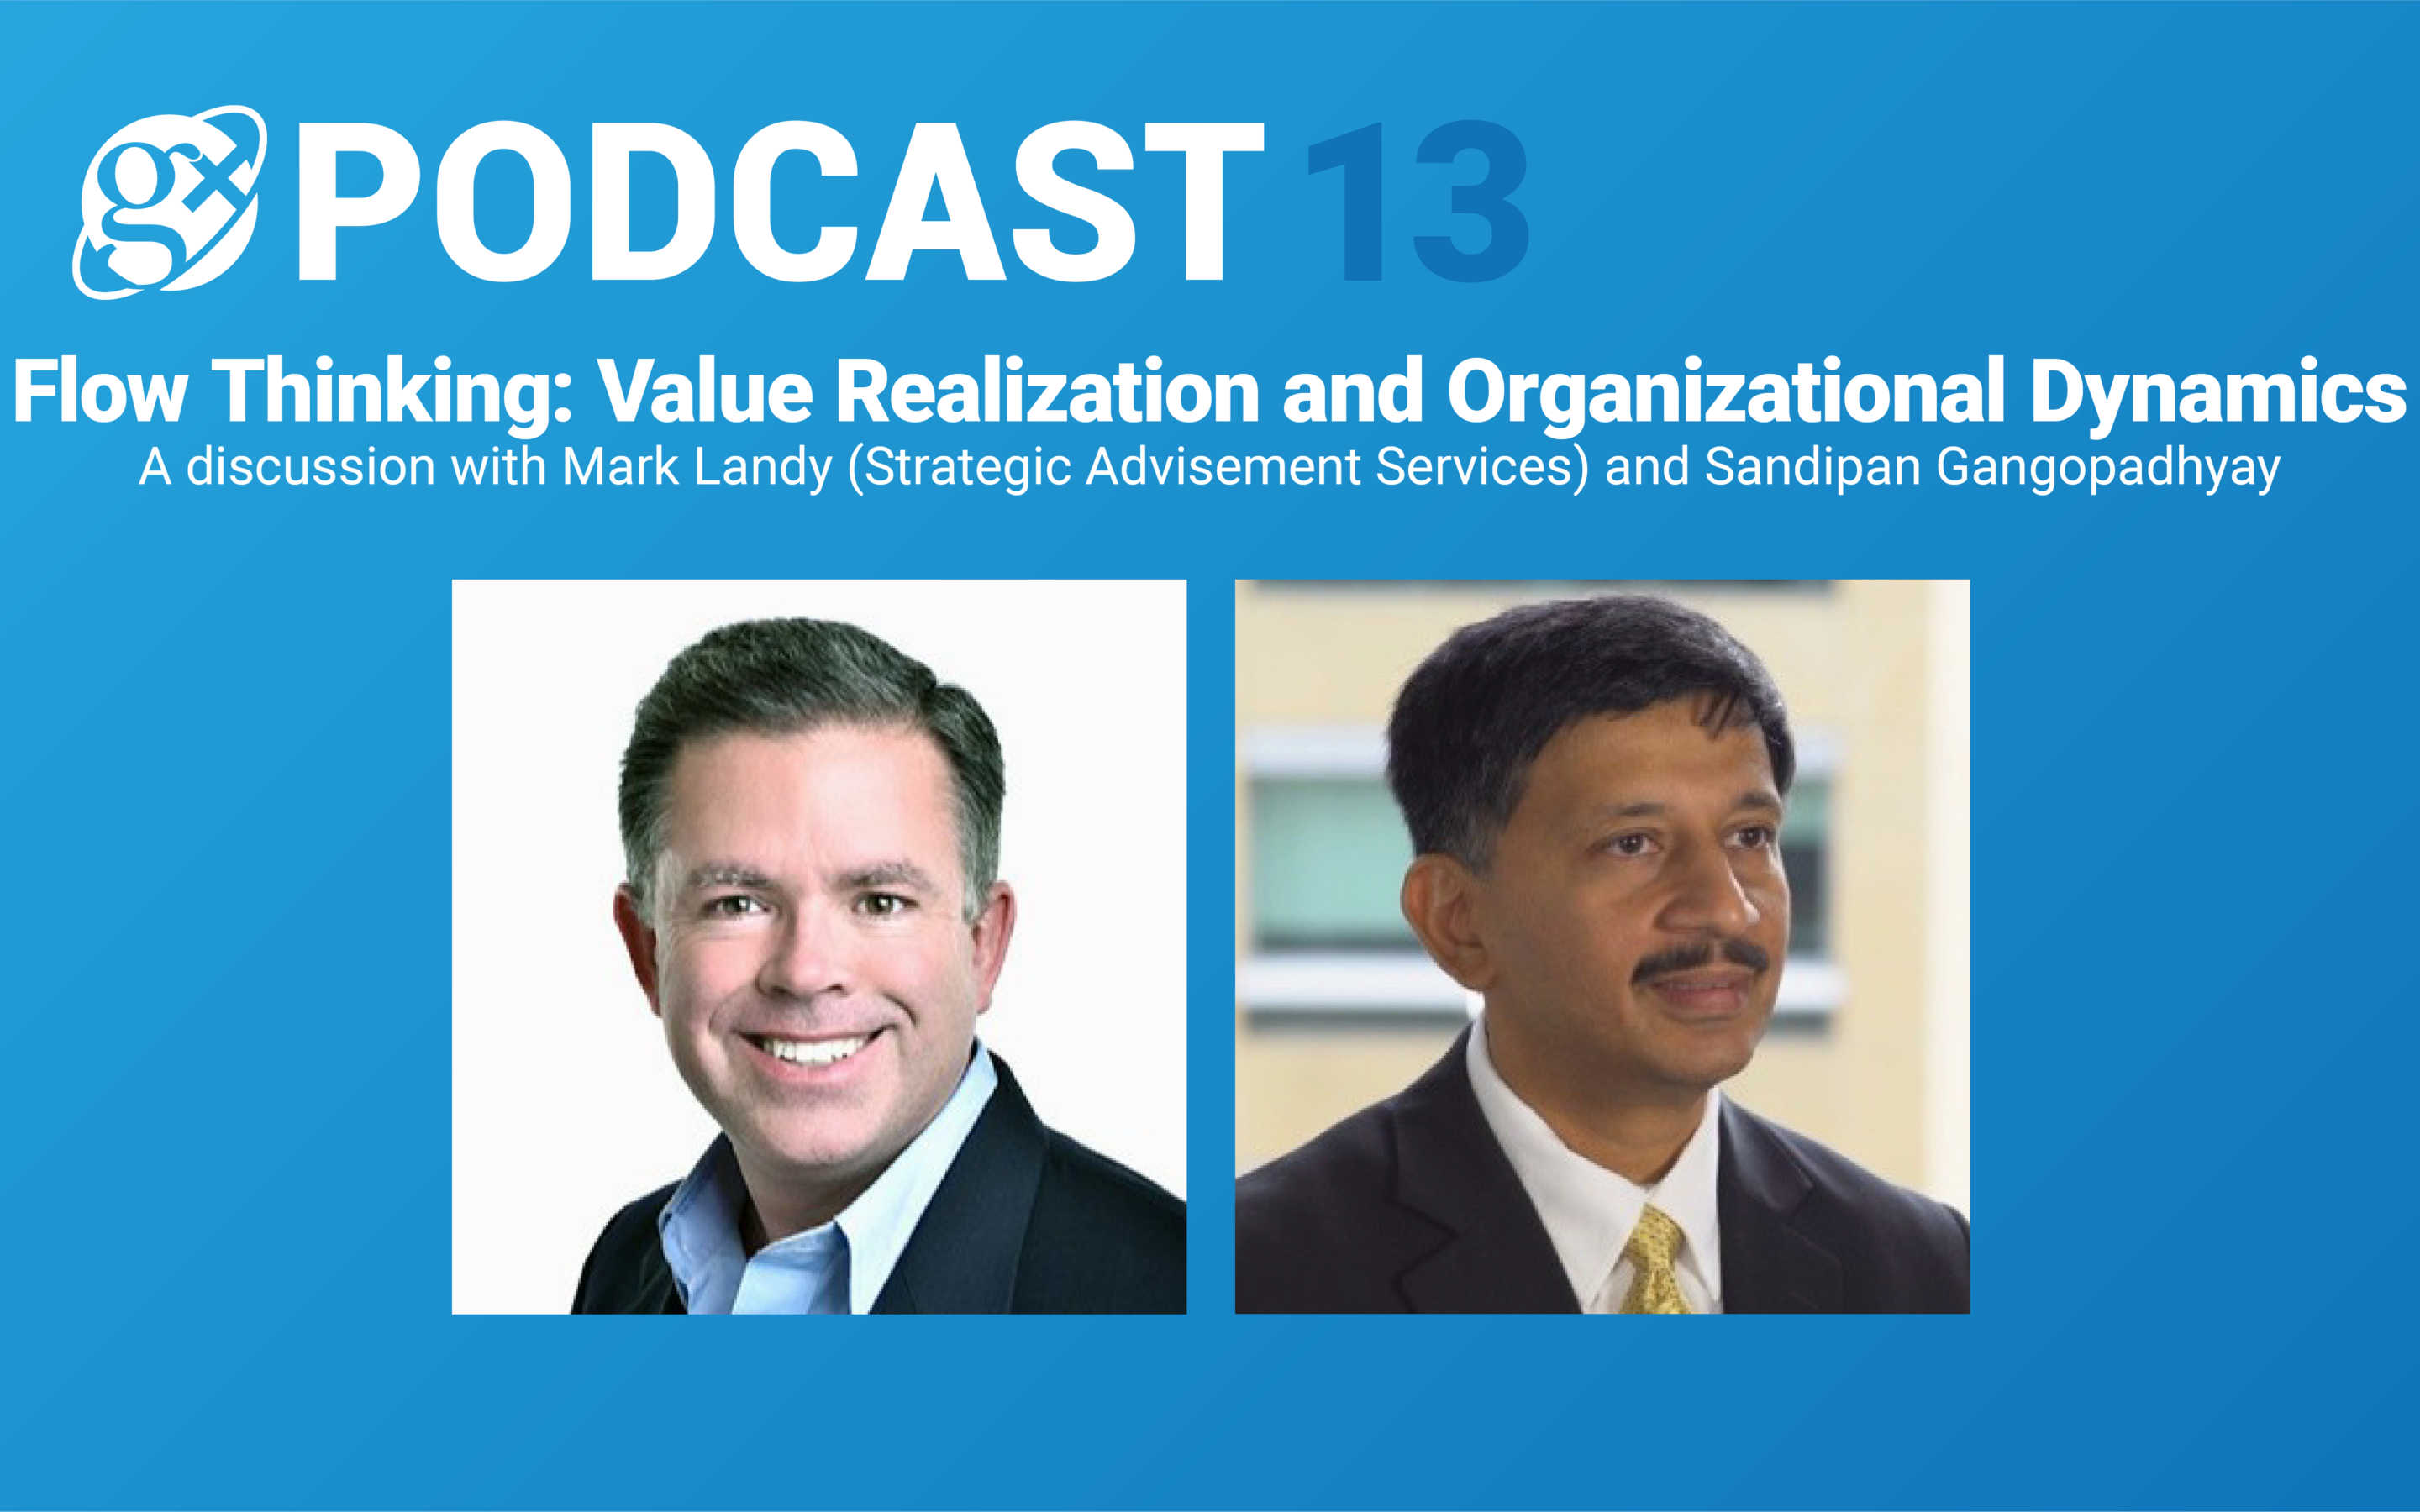 Gx Podcast 13: Flow Thinking: Value Realization and Organizational Dynamics